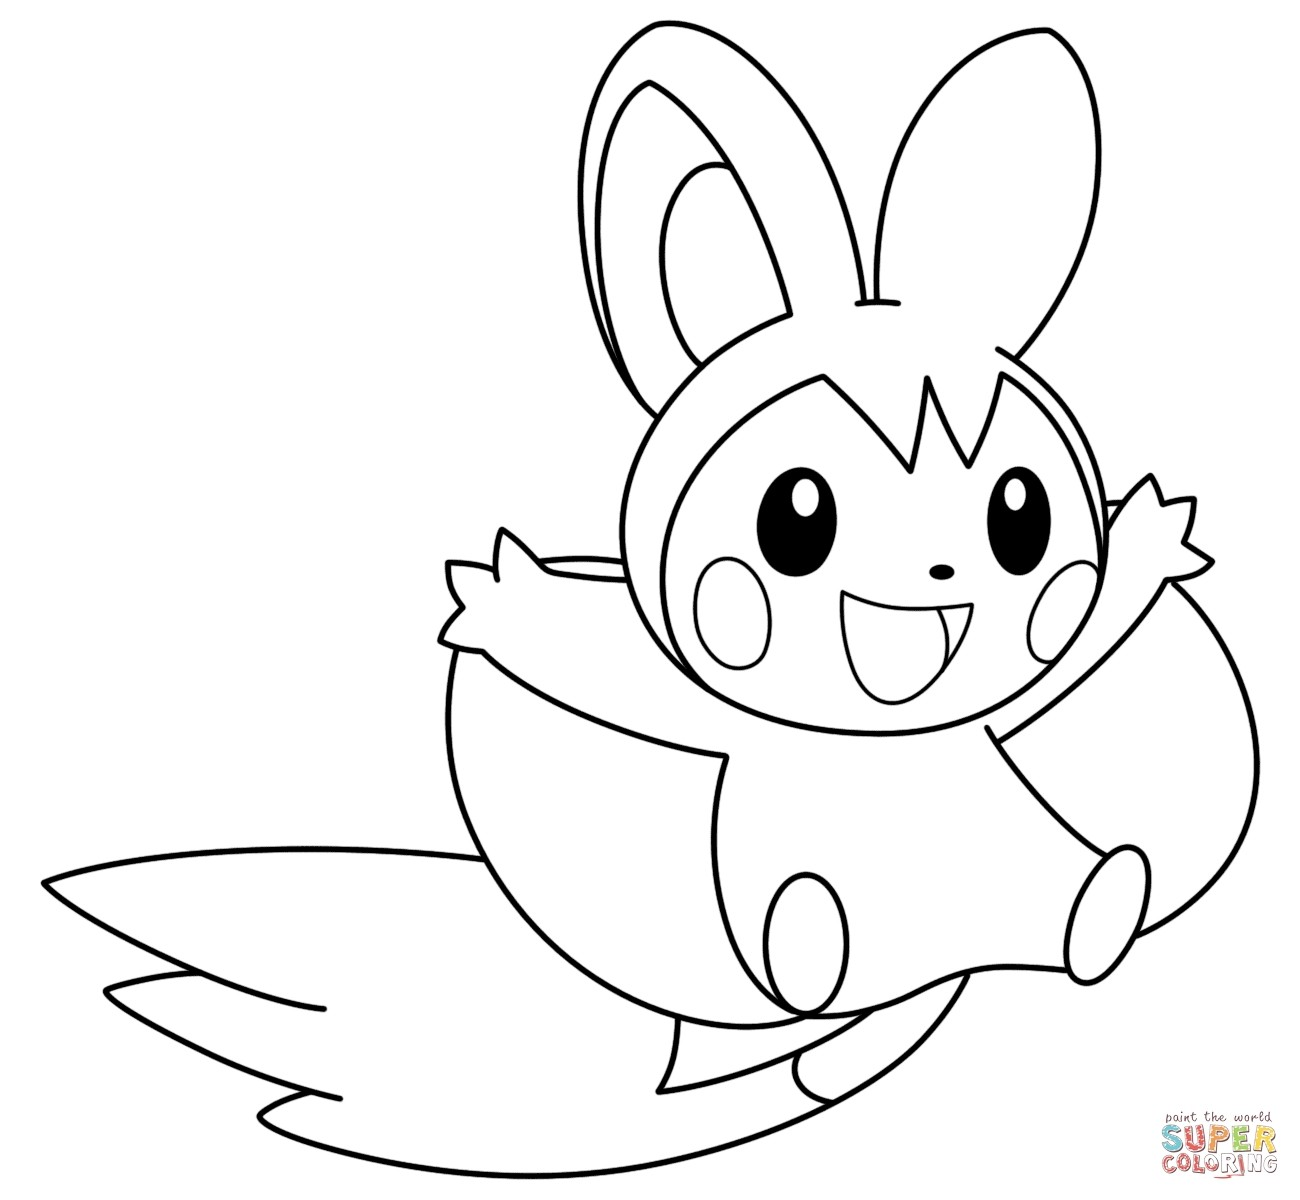 1300x1200 Pokemon Coloring Pages Braviary Best Of Pokemon Coloring Pages